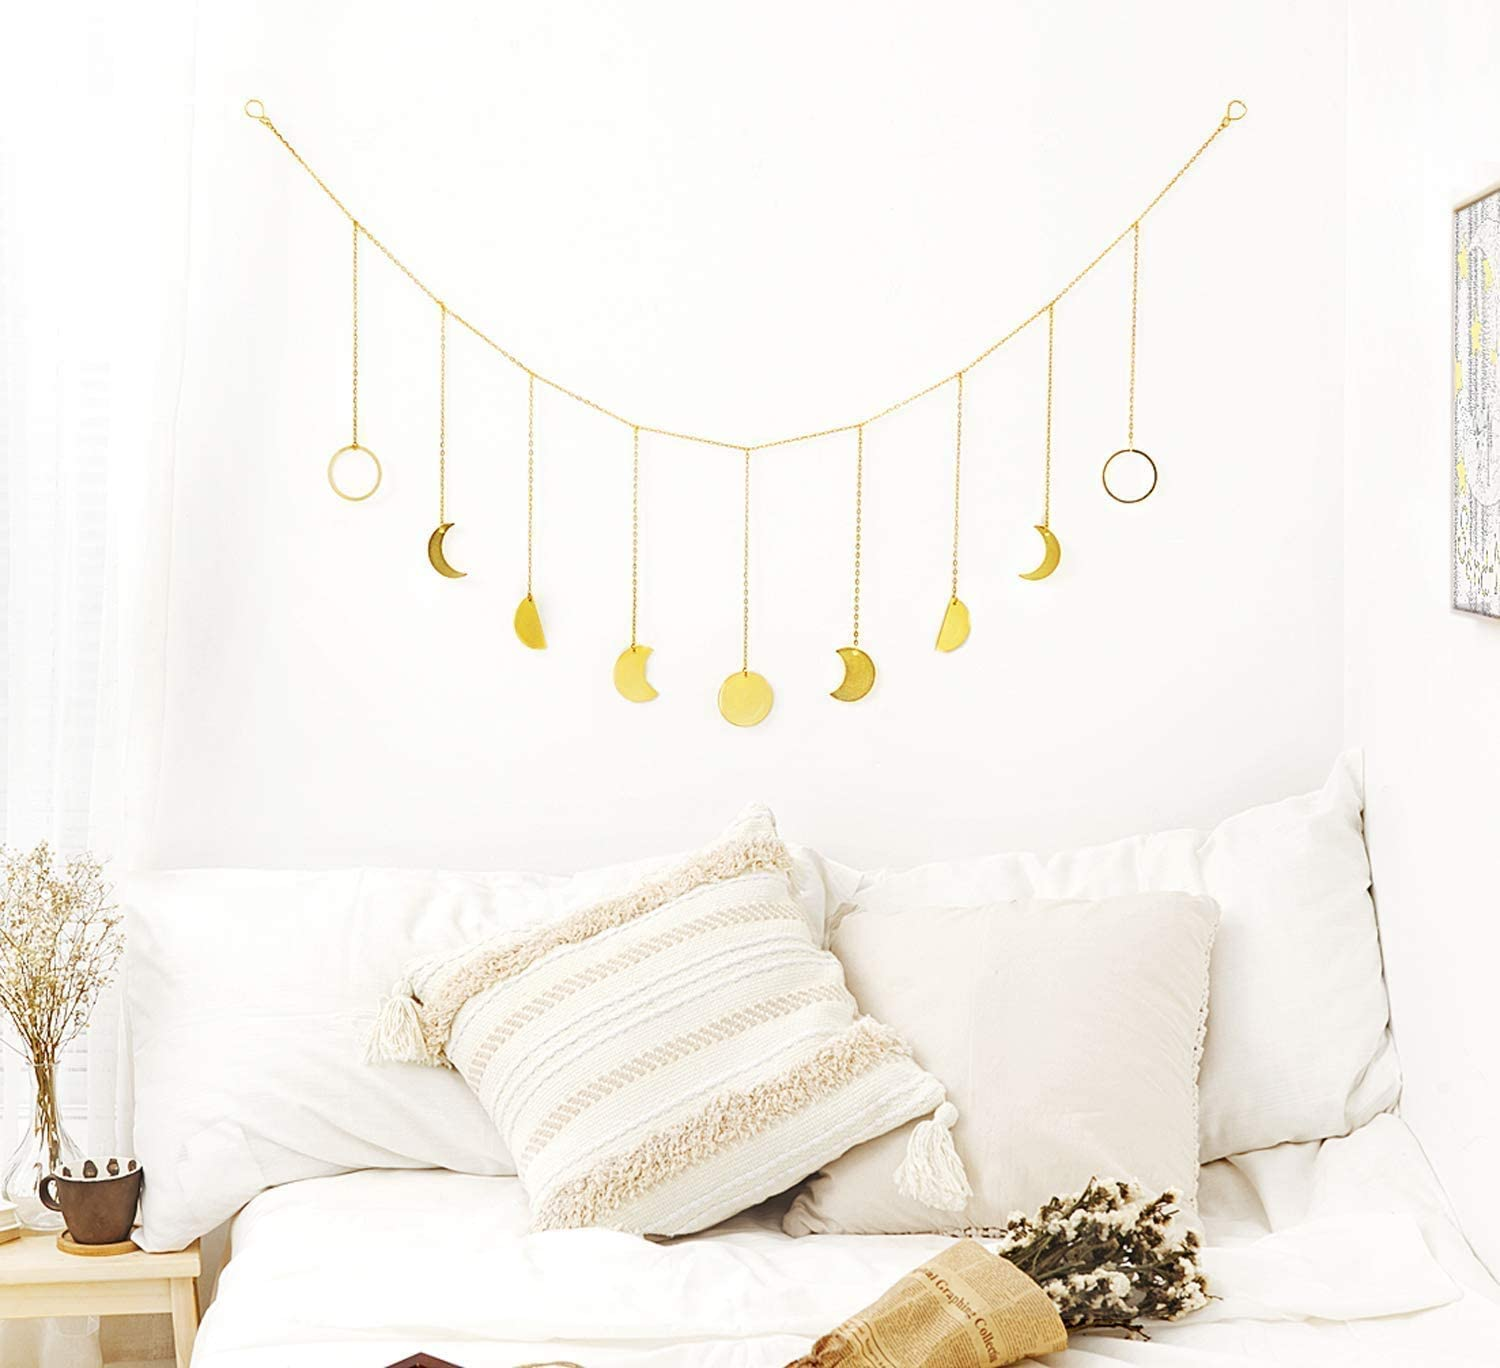 Long Garland Gold Metal Moon Decor Wall Decorations Home Living Room Apartment Or Christmas Viwipow Accents Boho Wall Decor Moon Phase Garland With Chains For Wedding Bedroom Sculptural Frames Holders Picture